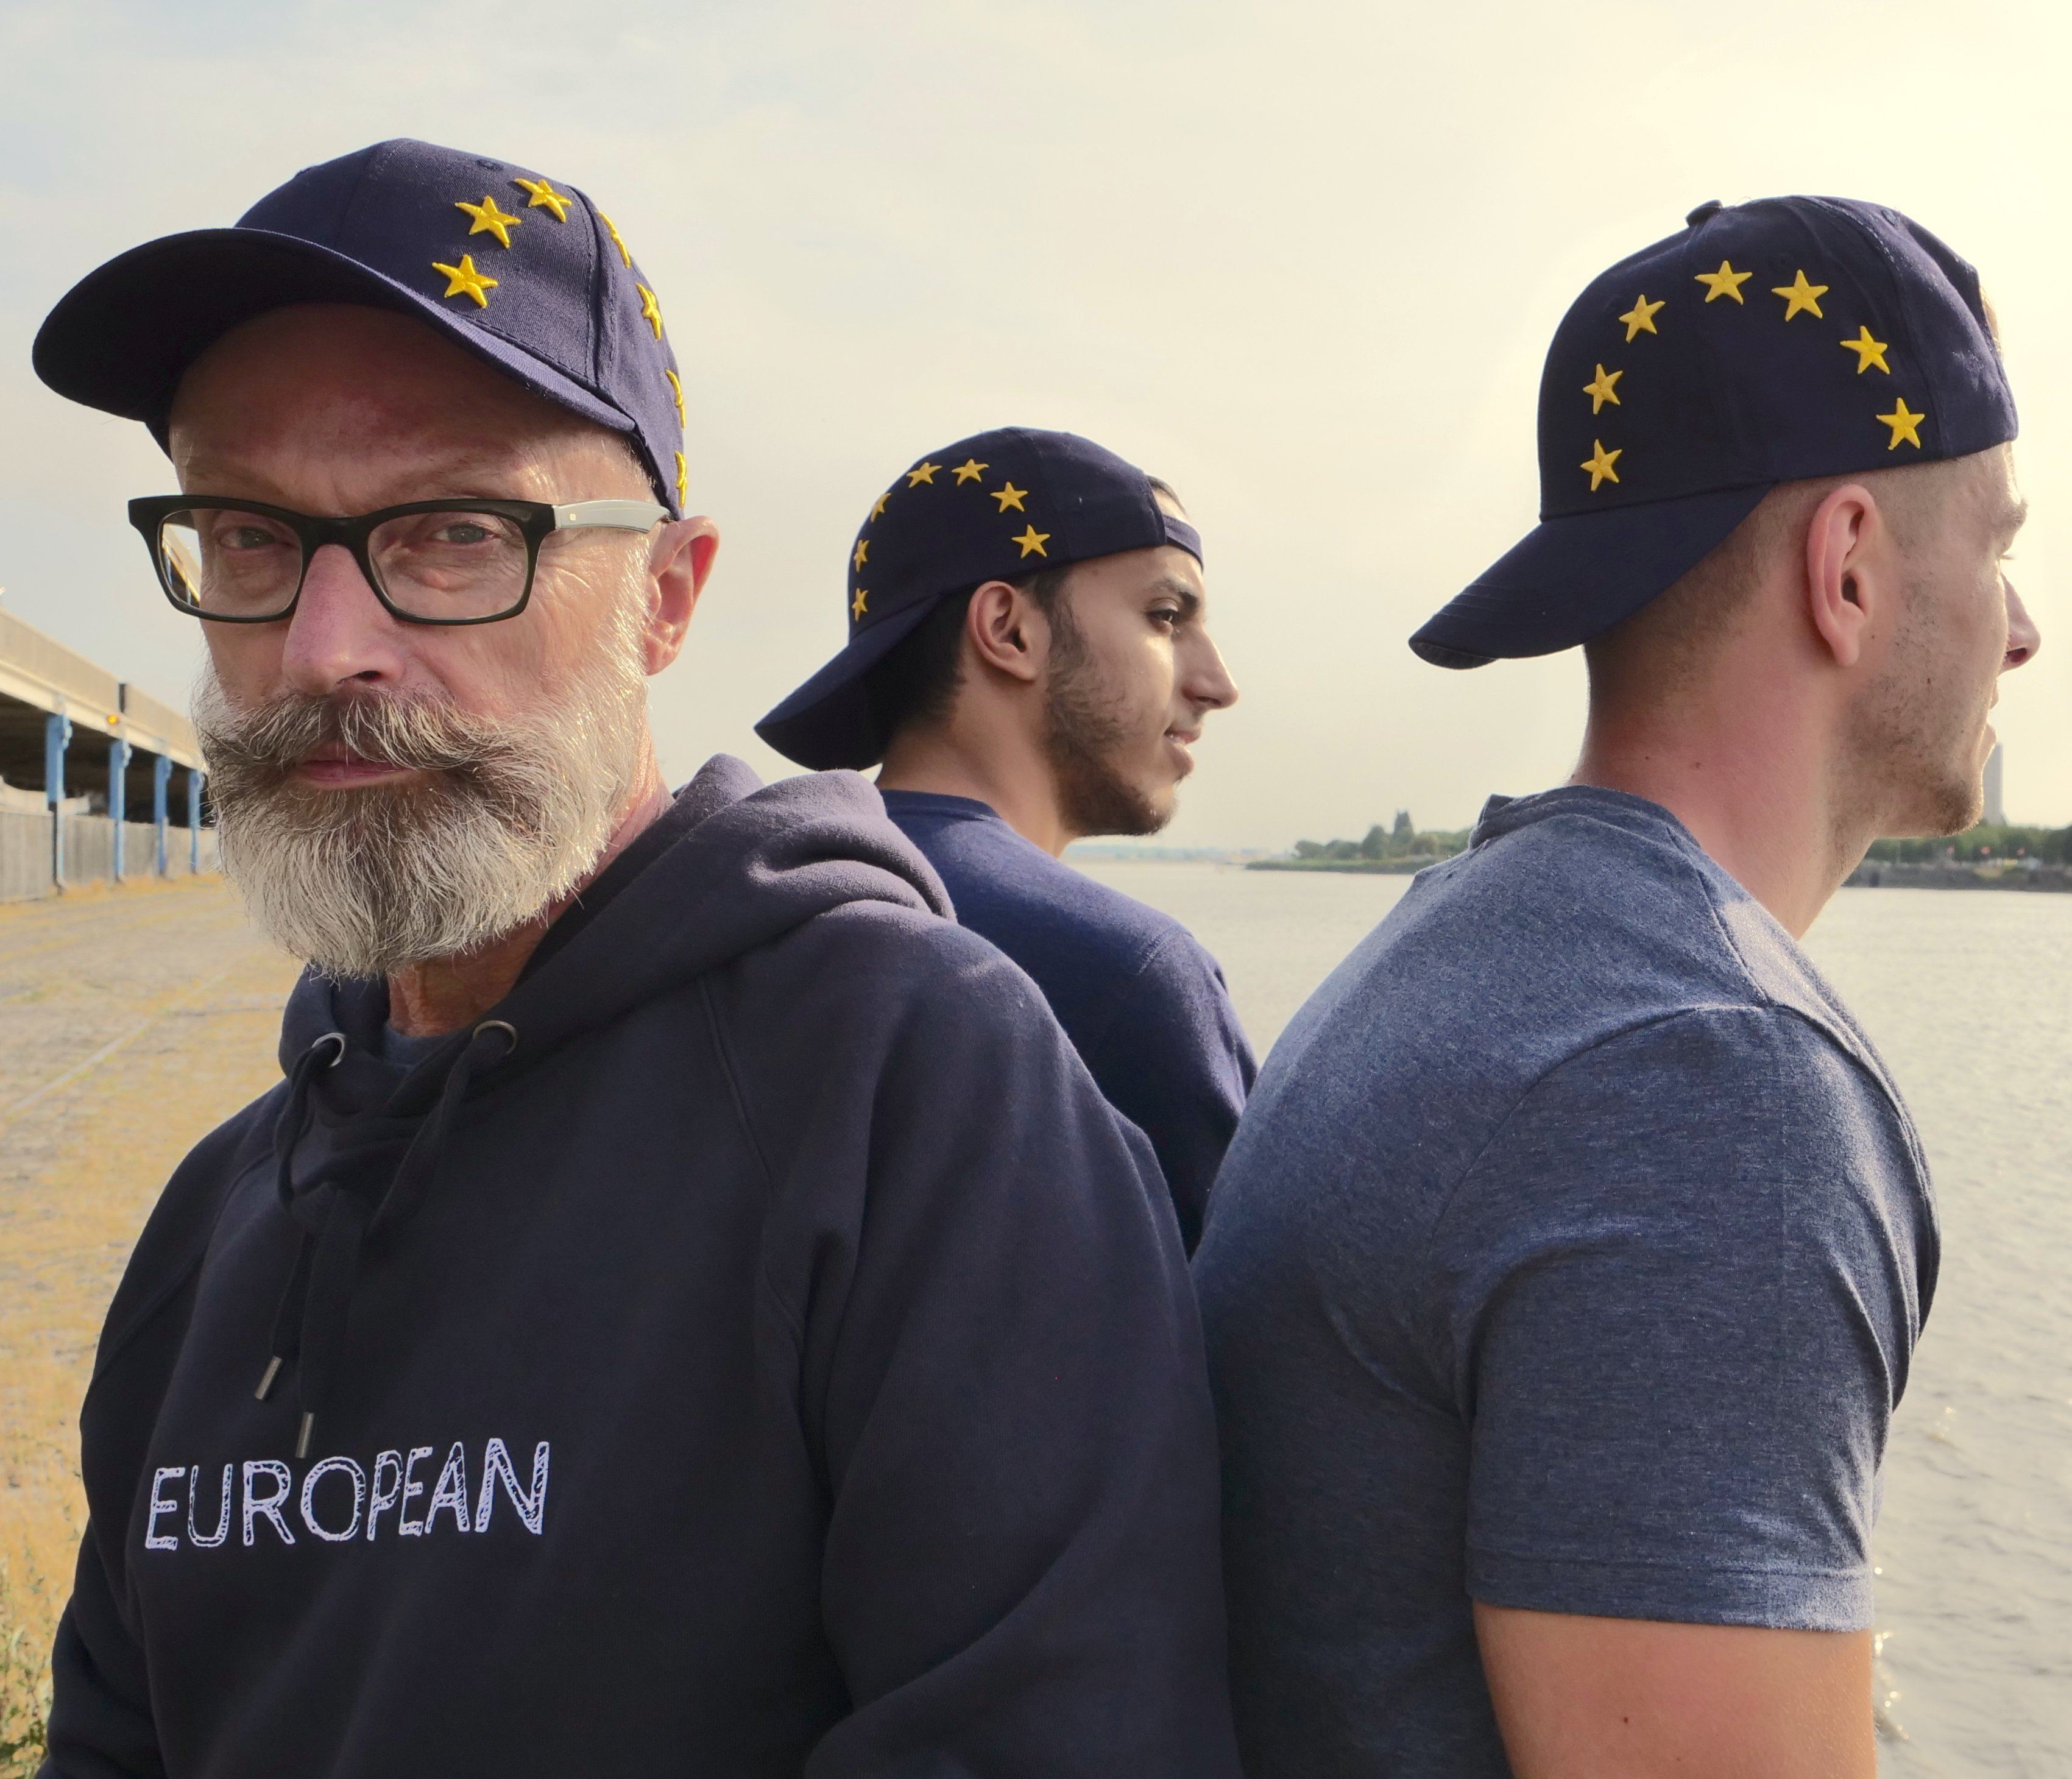 Stars Cap - European By Choice